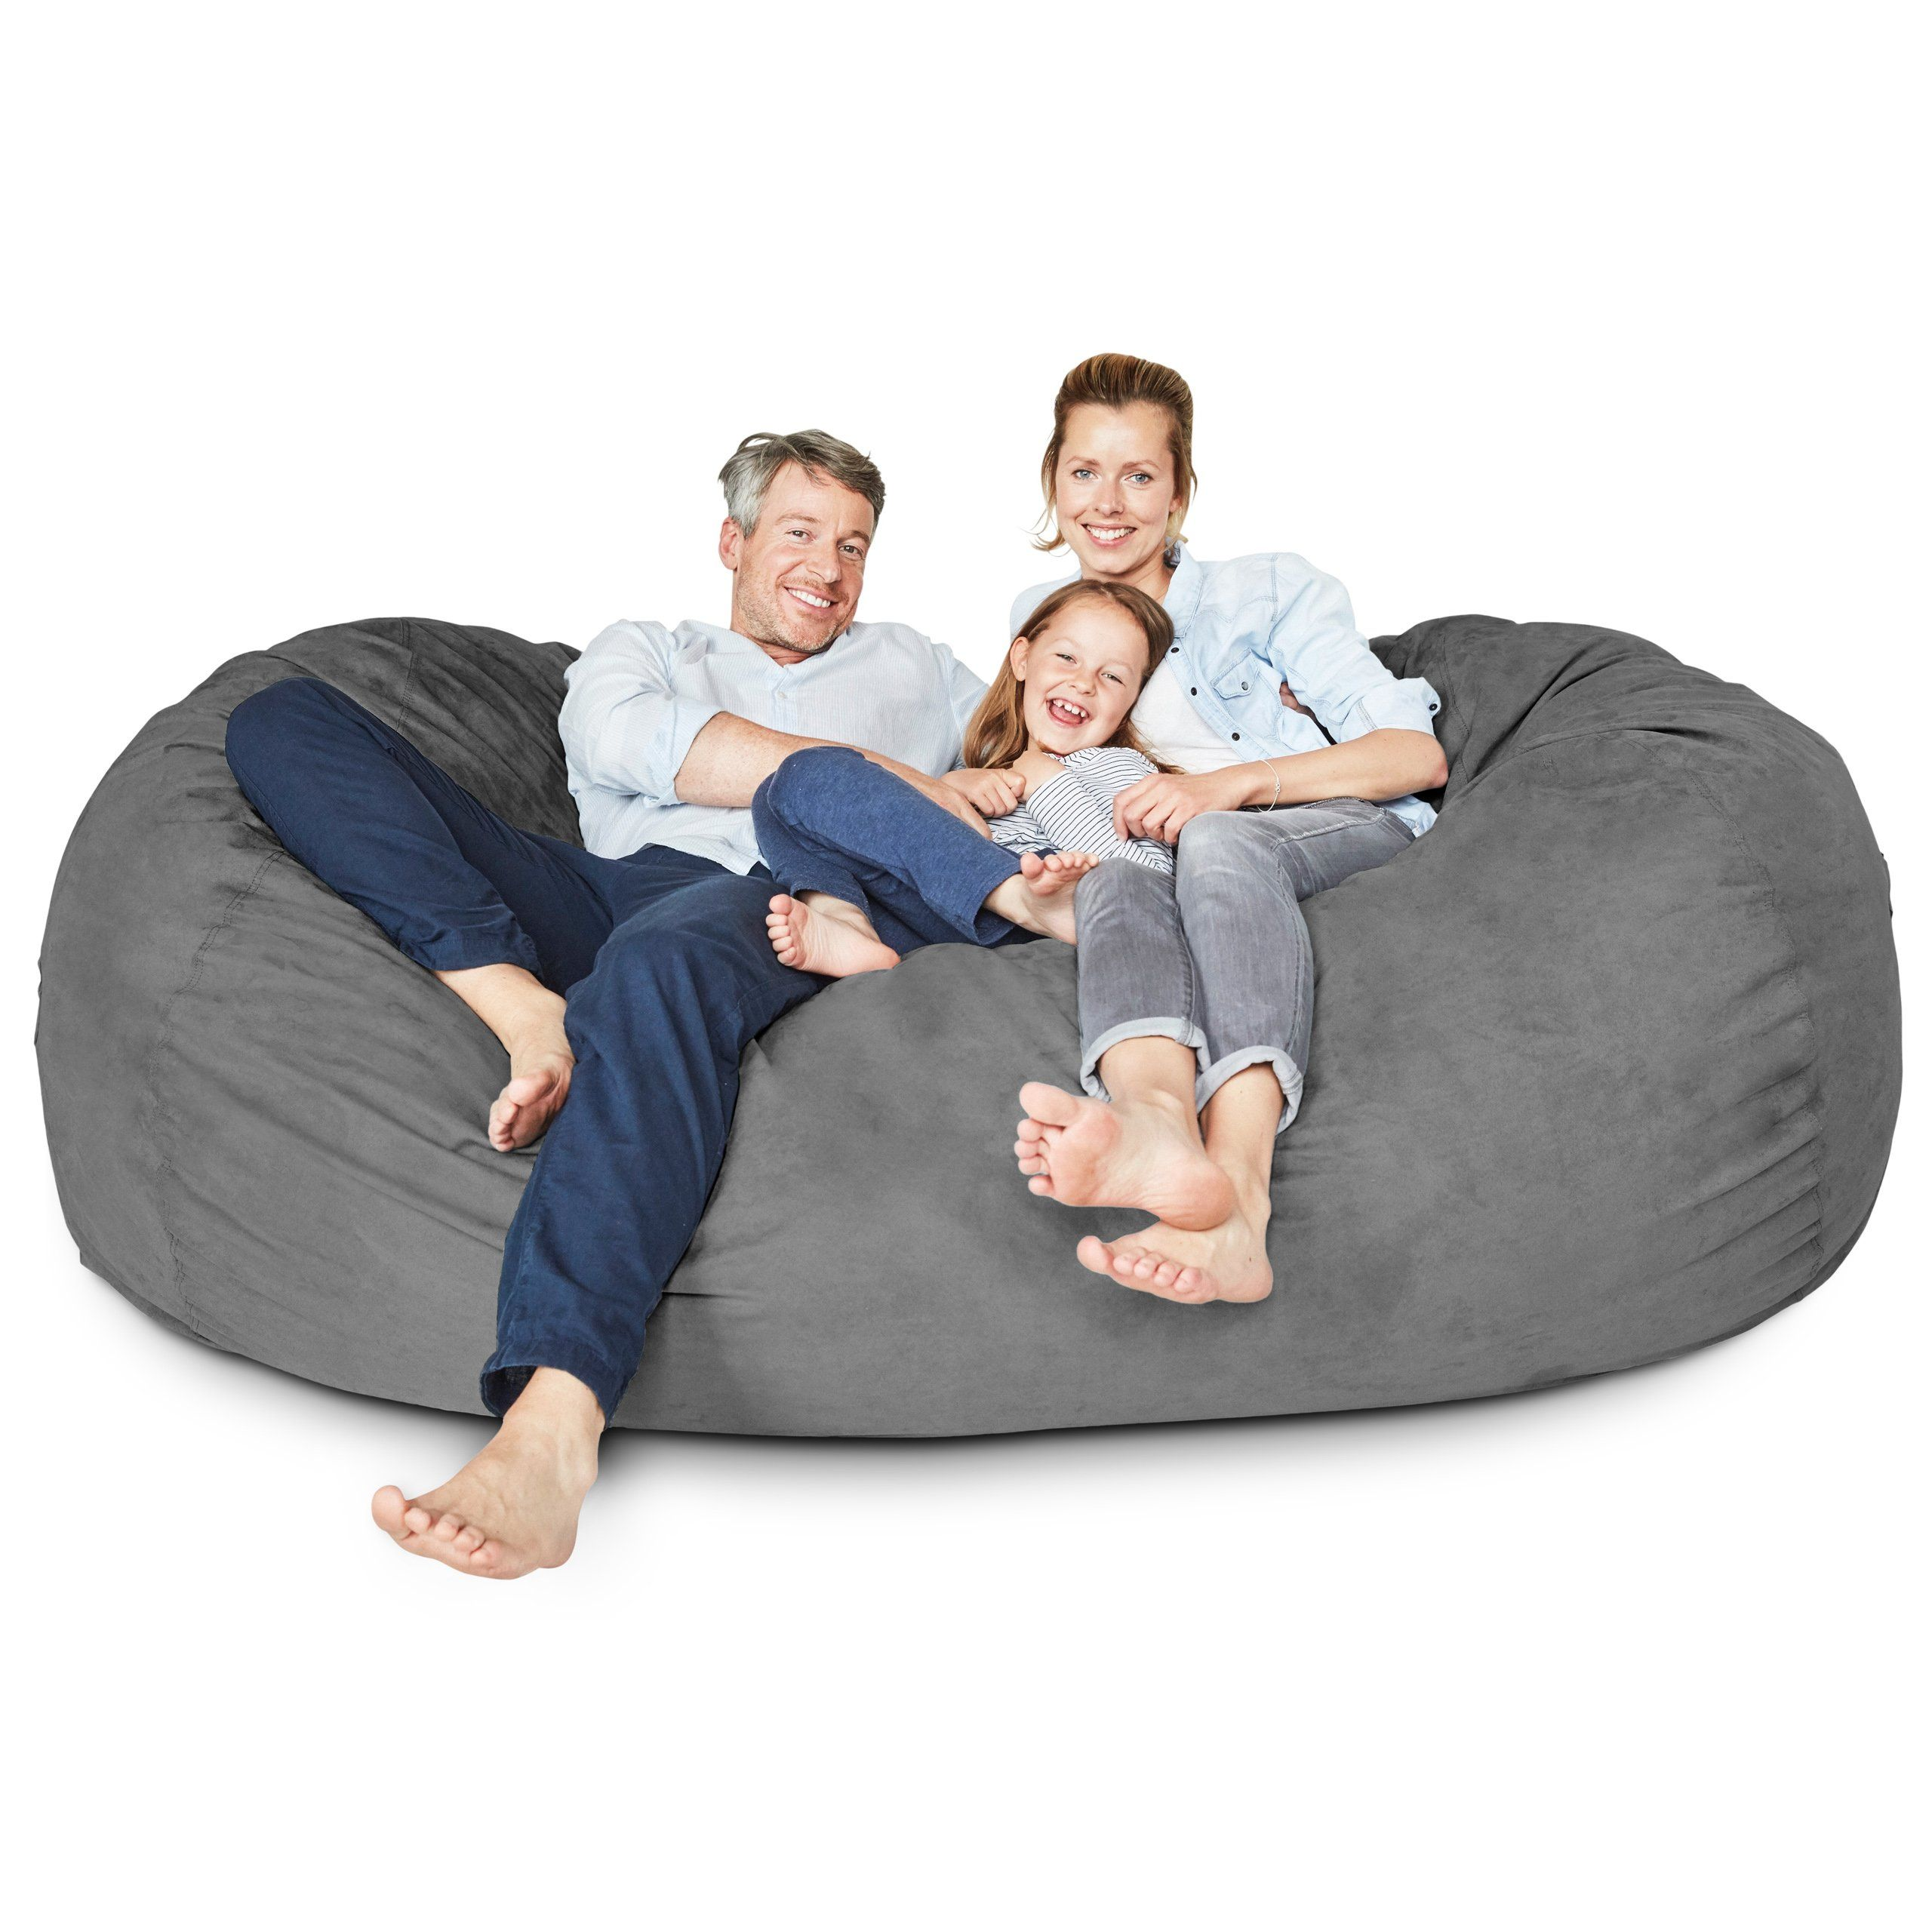 cushion Lumaland Luxury 7Foot Bean Bag Chair with